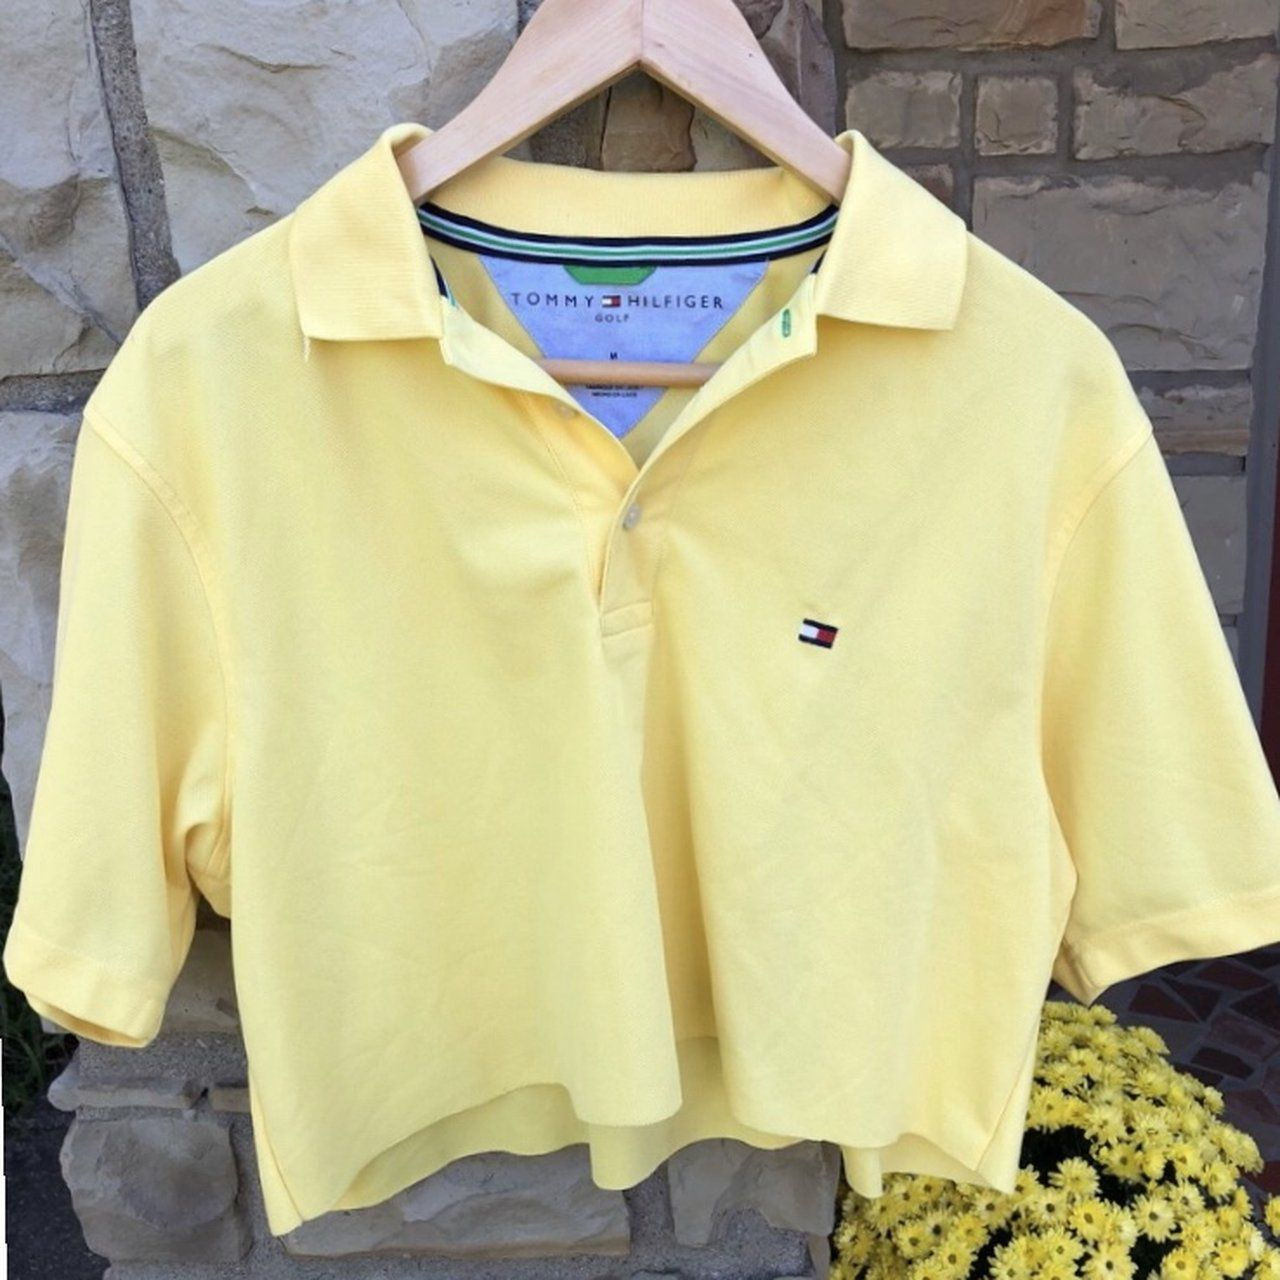 73290d2ed8 tommy hilfiger slight cropped polo shirt ~no flaws ~emma to - Depop